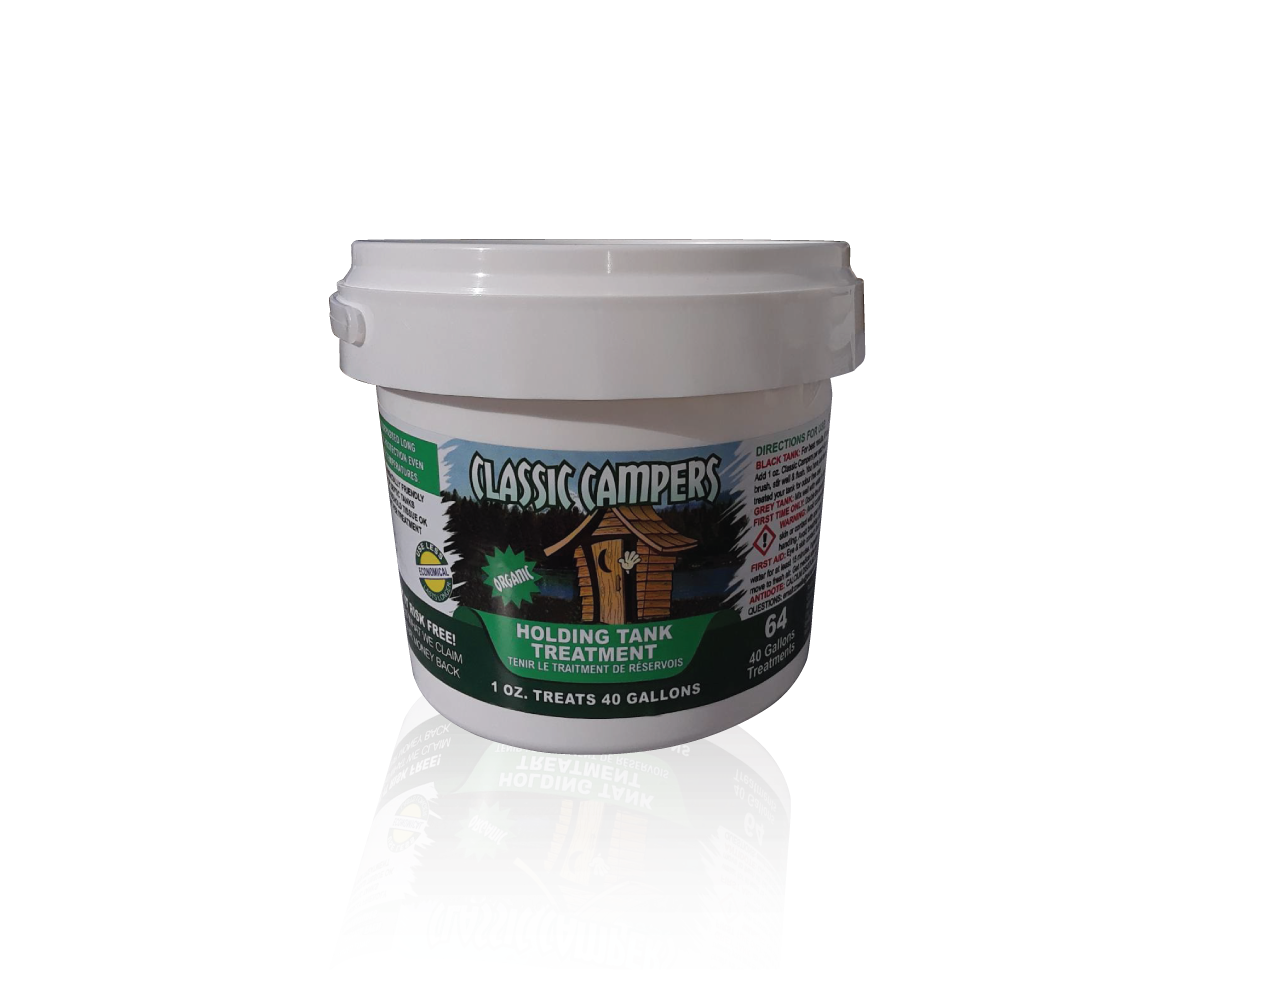 64 oz container of holding tank treatment